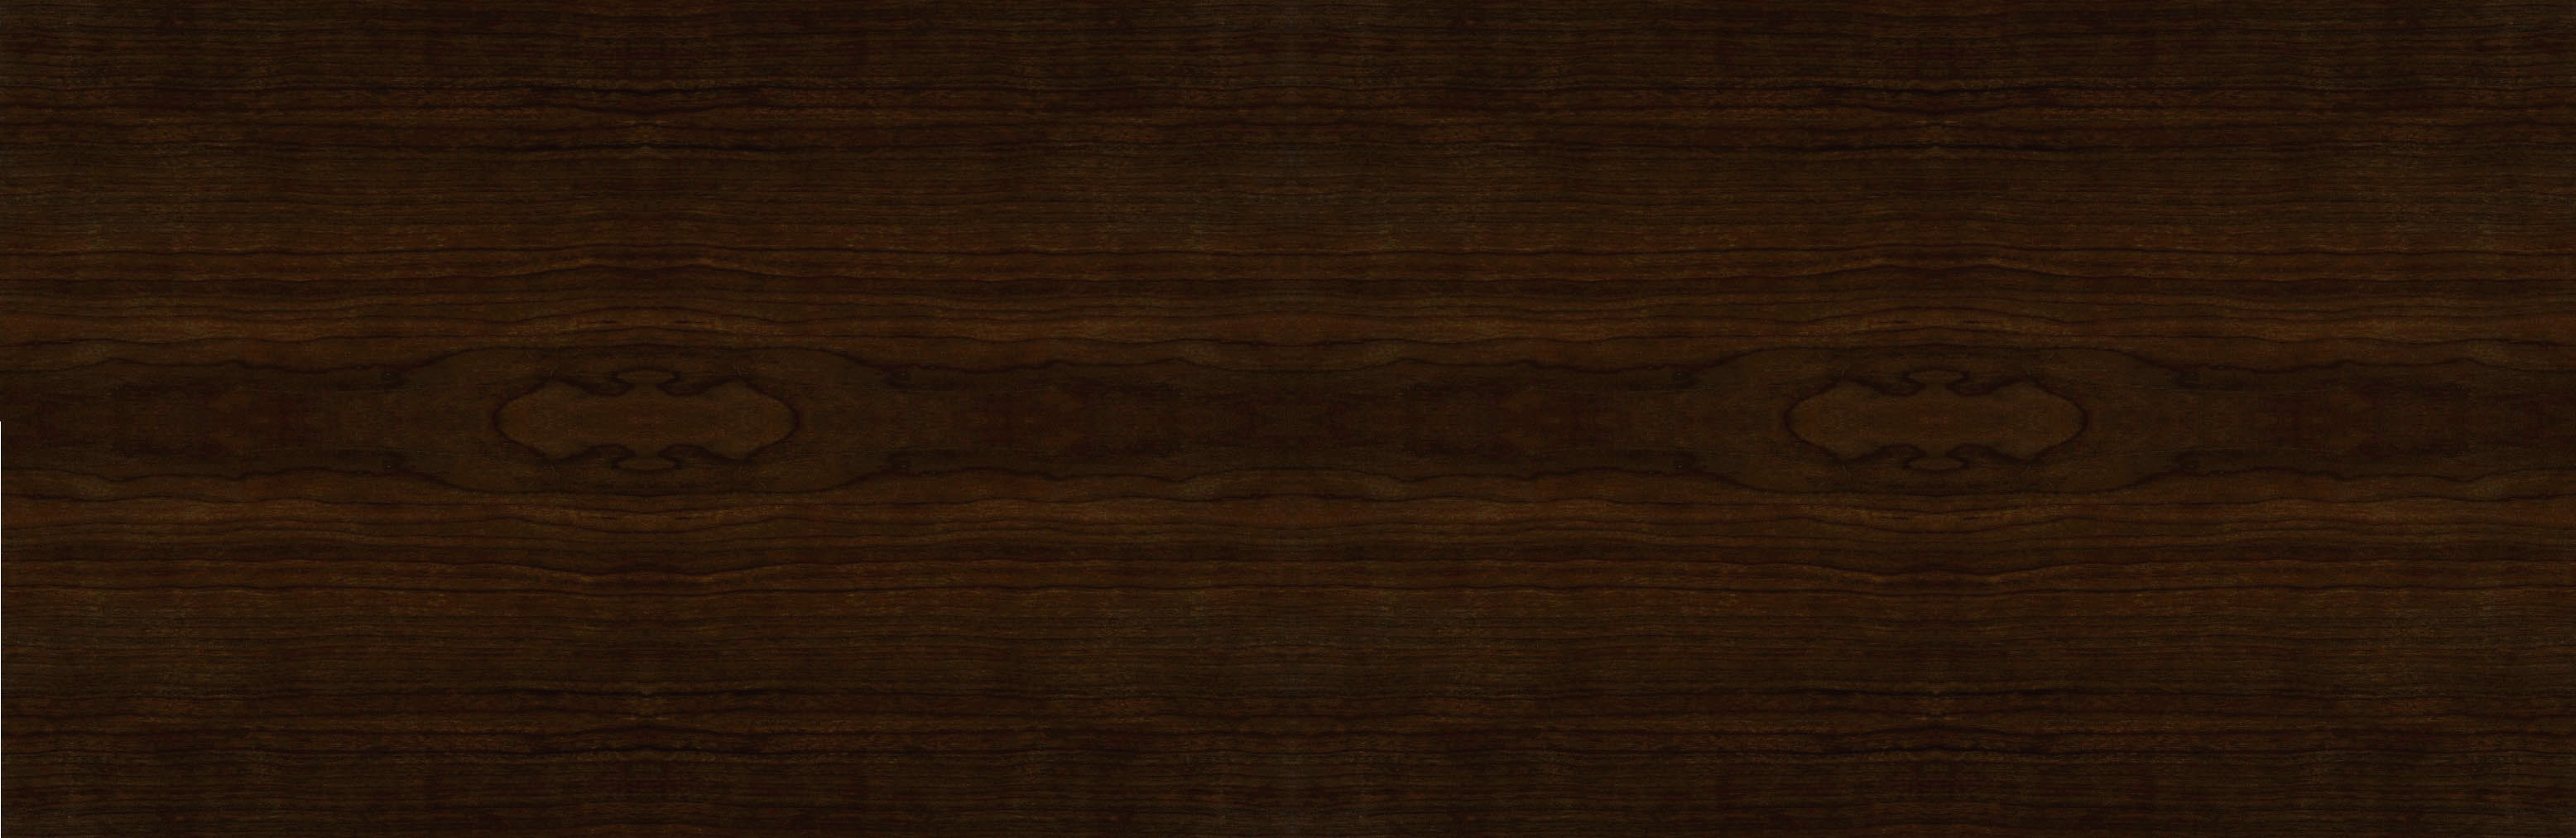 Dark Wood Texture Seamless2